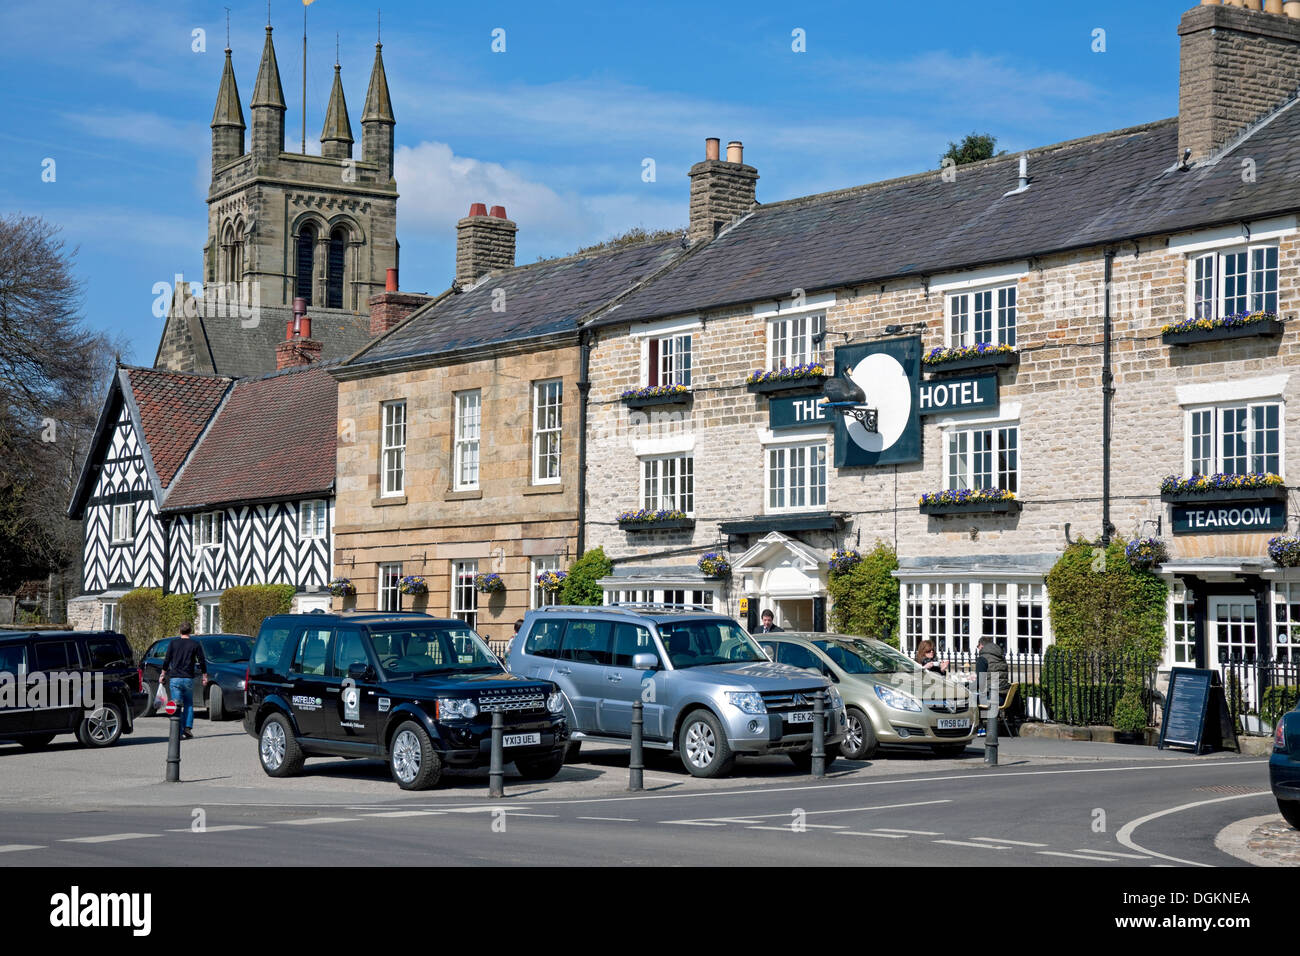 The Black Swan Hotel in Helmsley. - Stock Image